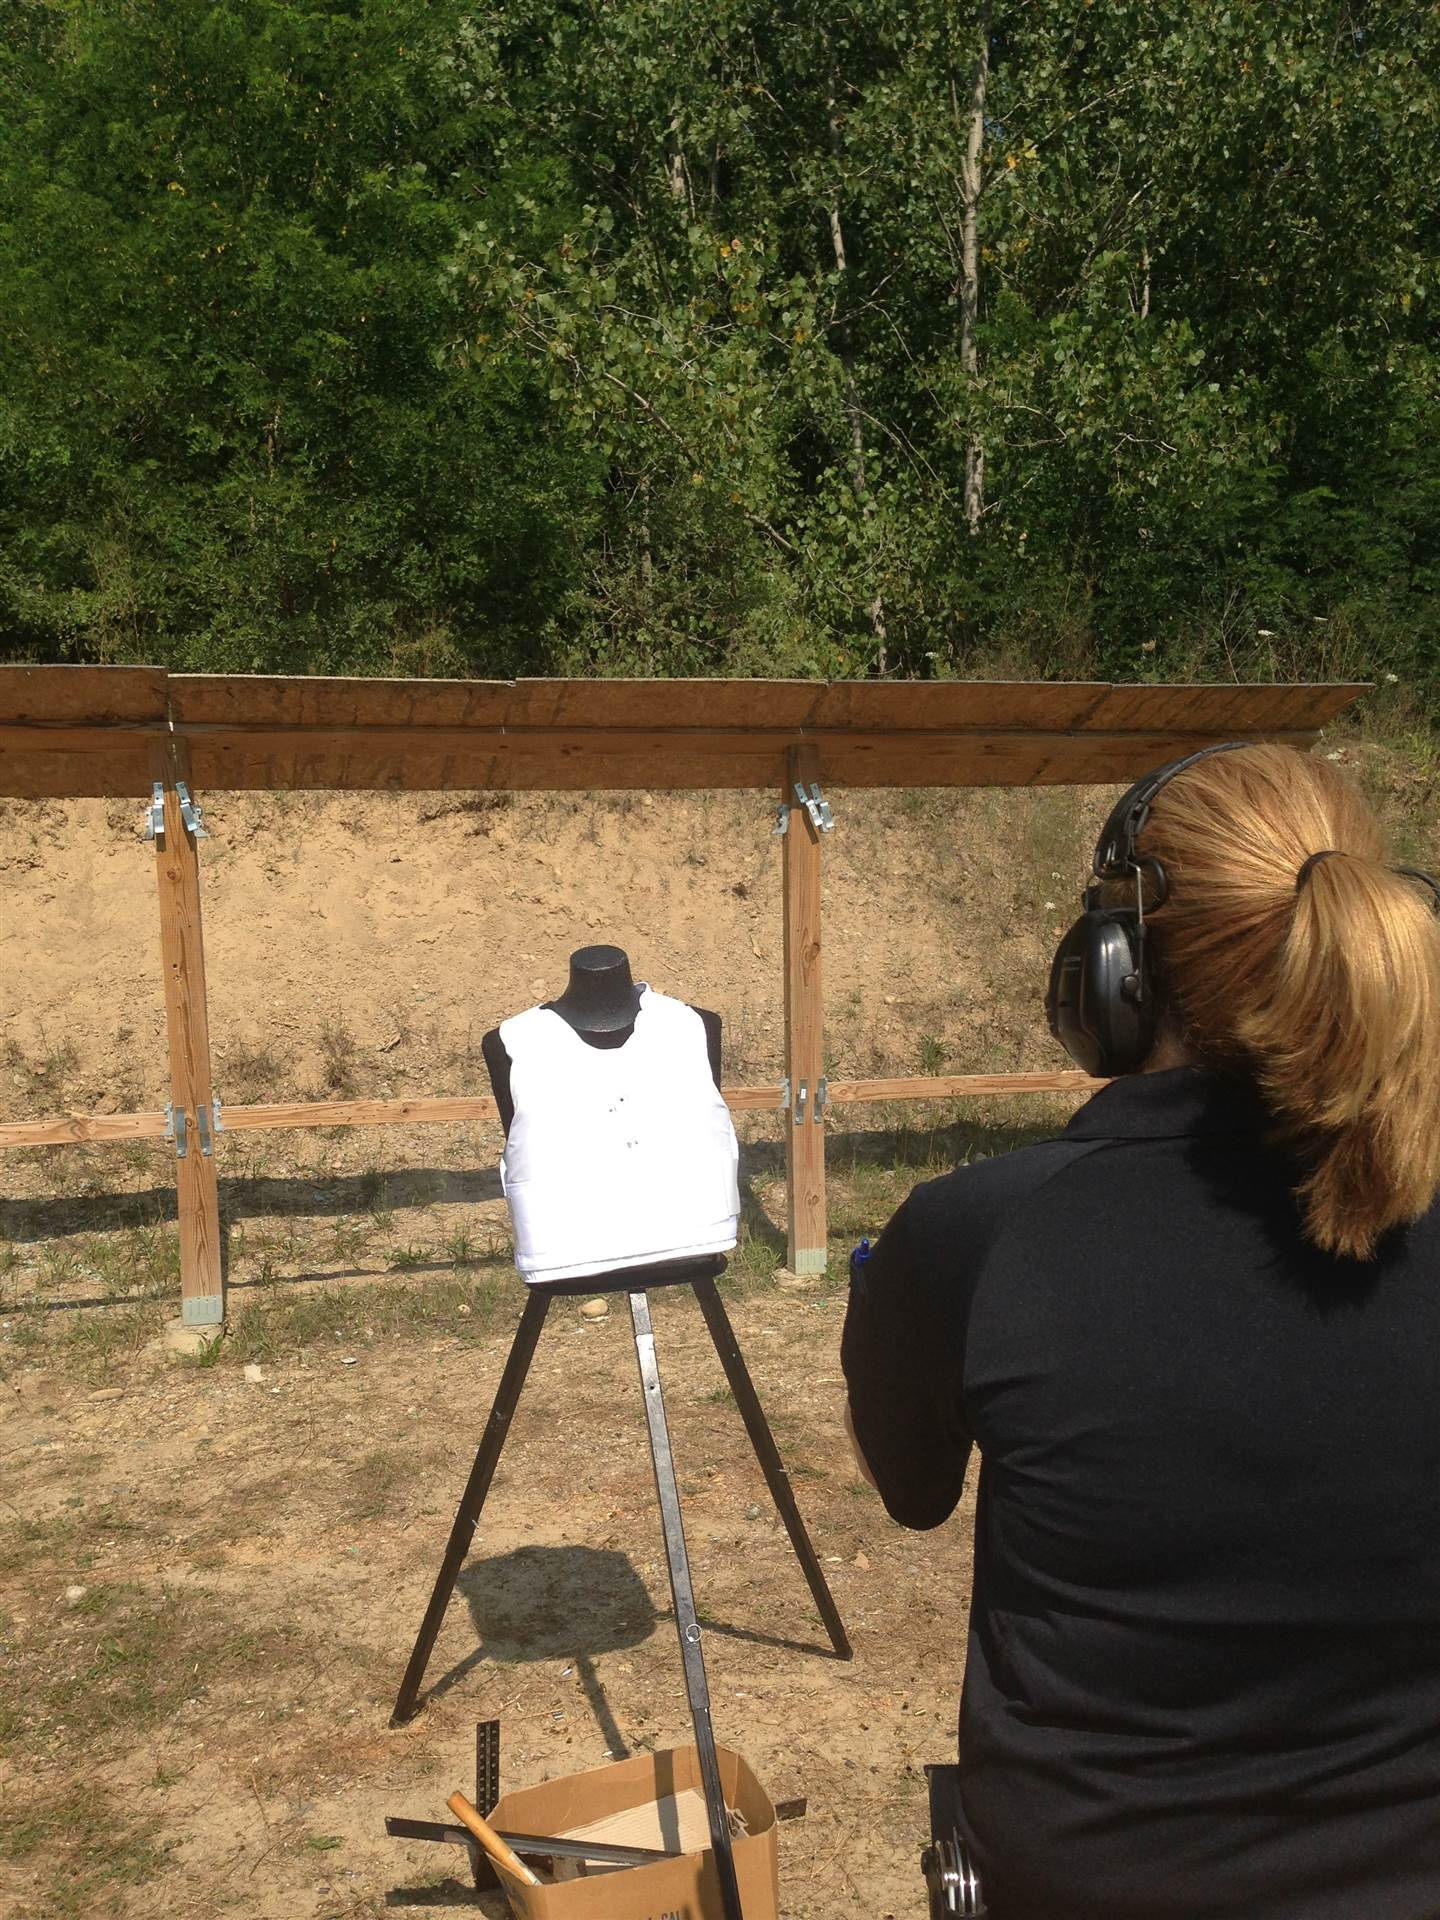 Results from the Body Armor Shoot at Ann Arbor PD